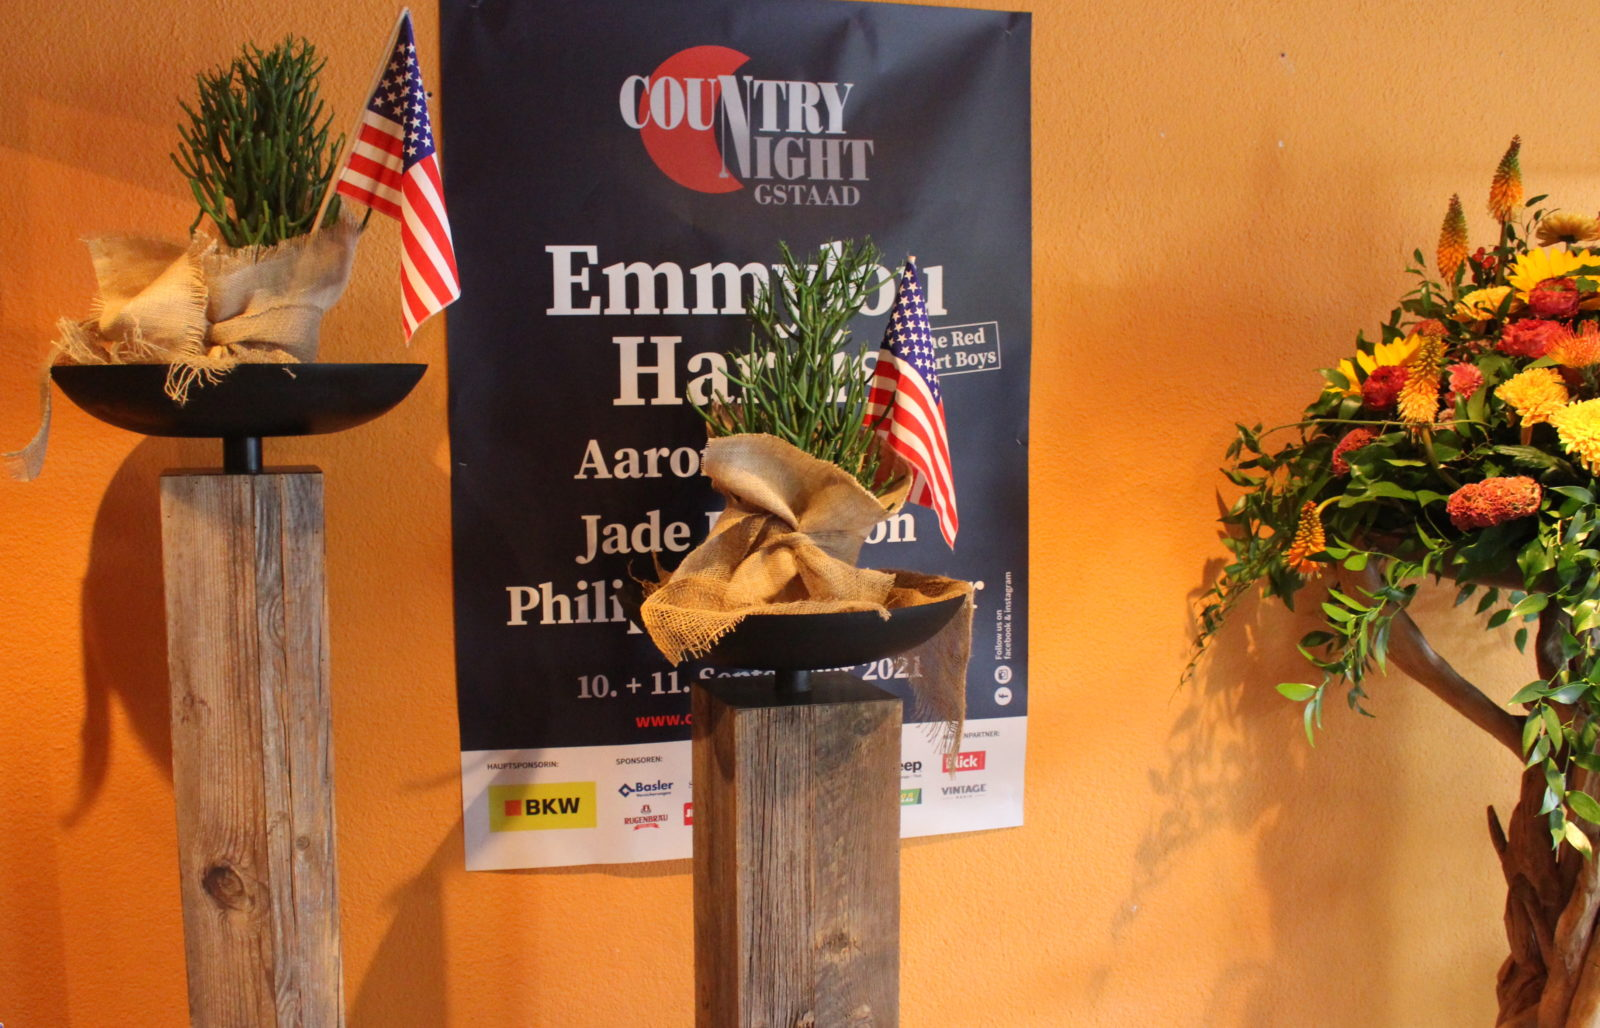 Country Night Gstaad 2021- affiche